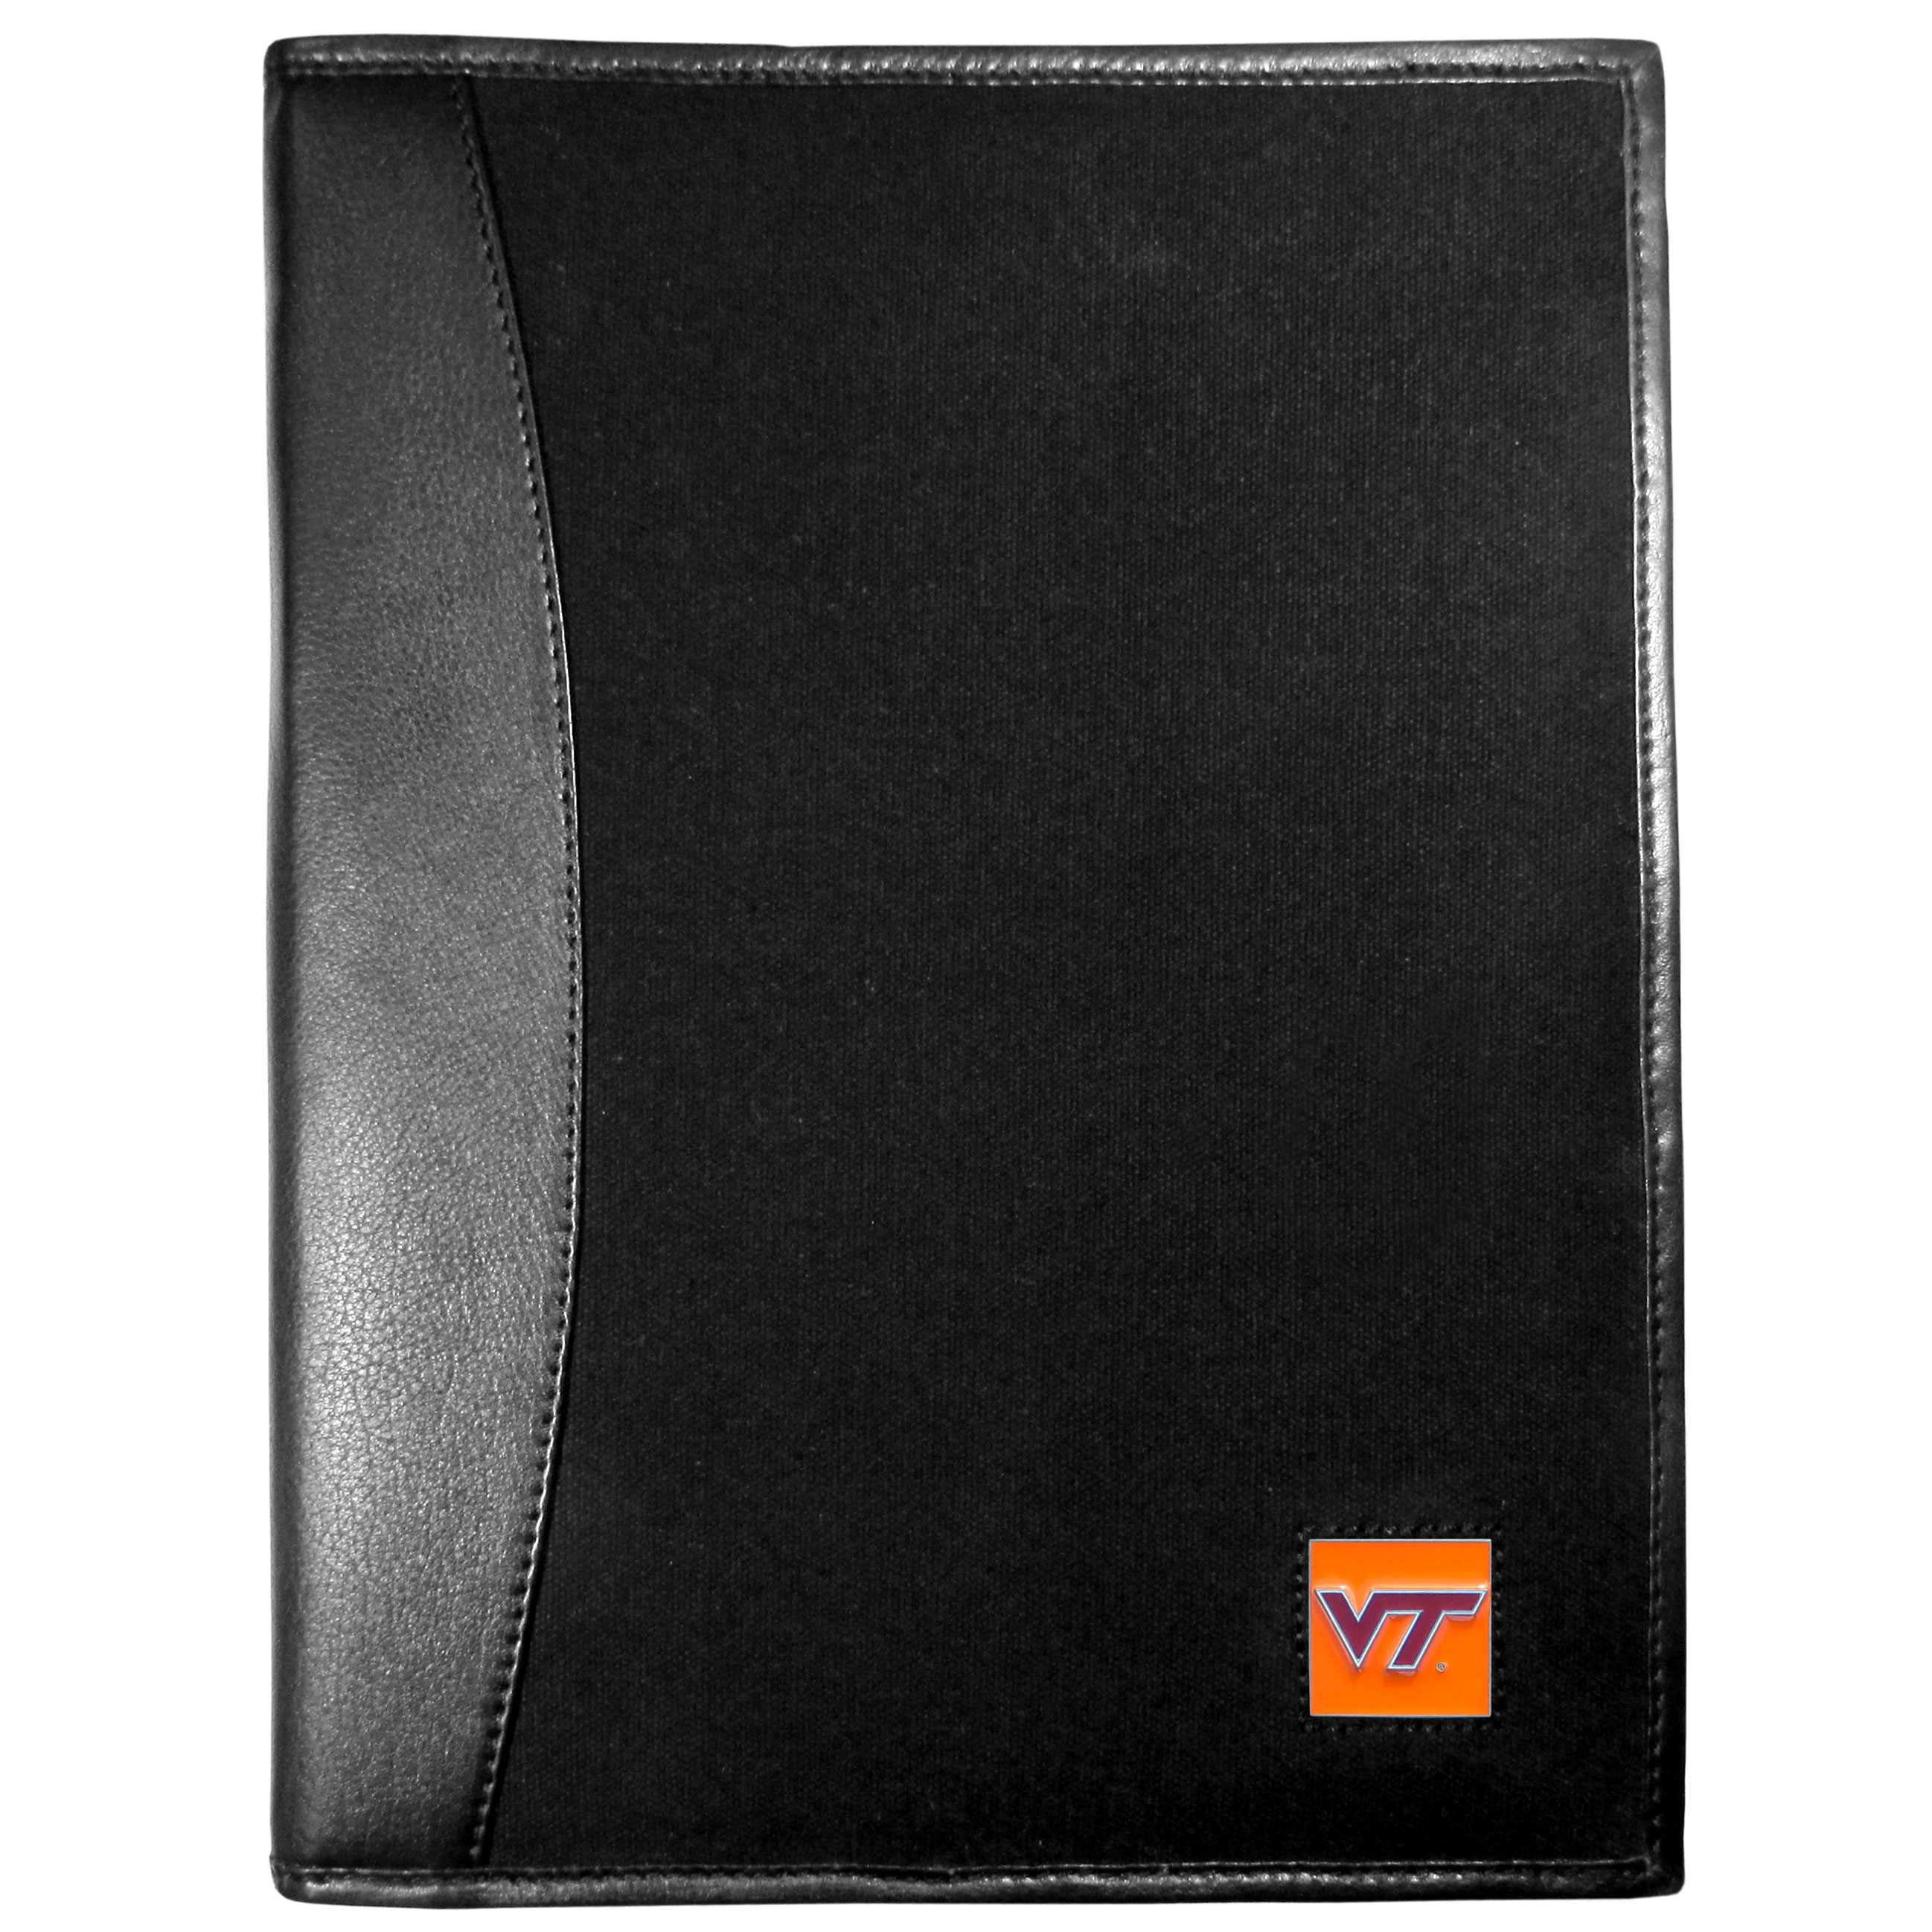 Virginia Tech Hokies Leather and Canvas Padfolio - Our leather and canvas padfolio perfectly blends form and function. The attractive portfolio is bound in fine grain leather with an attractive canvas finish and the interior is a soft nylon. This high quality business accessory also features a fully cast metal Virginia Tech Hokies emblem that is subtly set in the corner of the organizer. It is packed with features like 6 card slots for badges, business cards, hotel keys or credit cards and ID with a large pocket for loose papers and a writing tablet slot making it a must-have for the professional on the go.